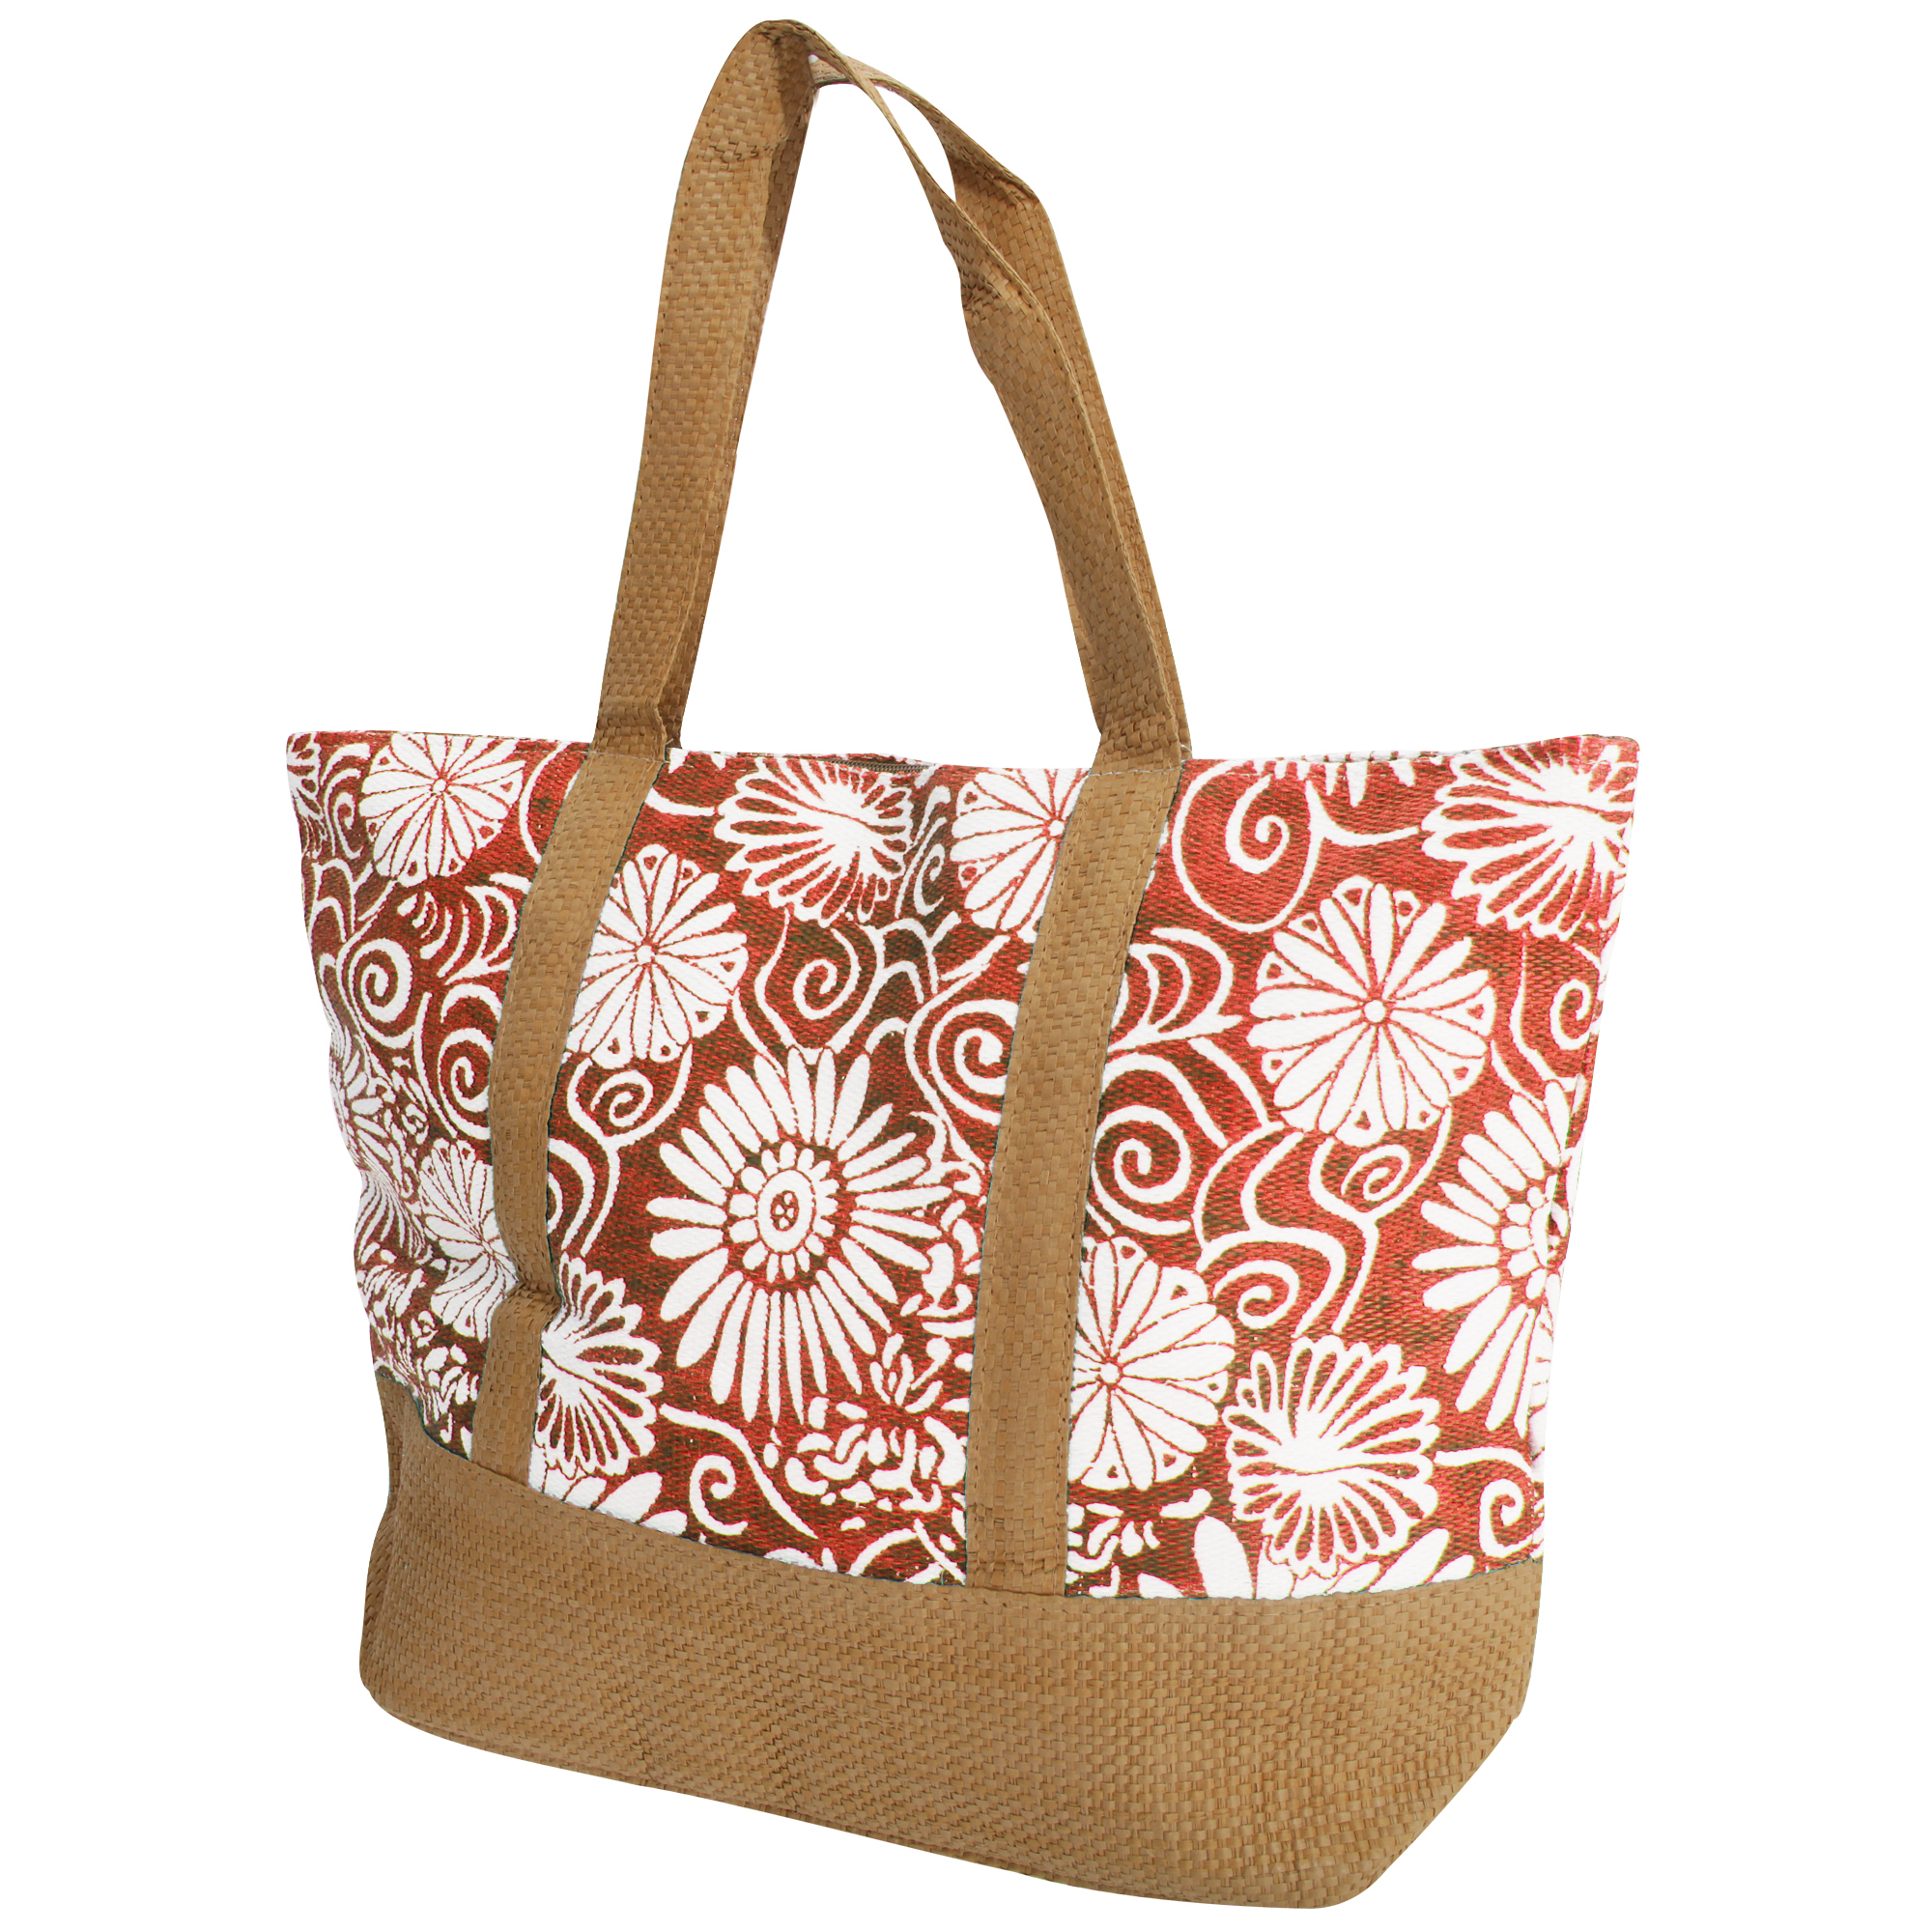 FLOSO Womens/Ladies Woven Floral Print Summer Handbag (One Size) (Coral)